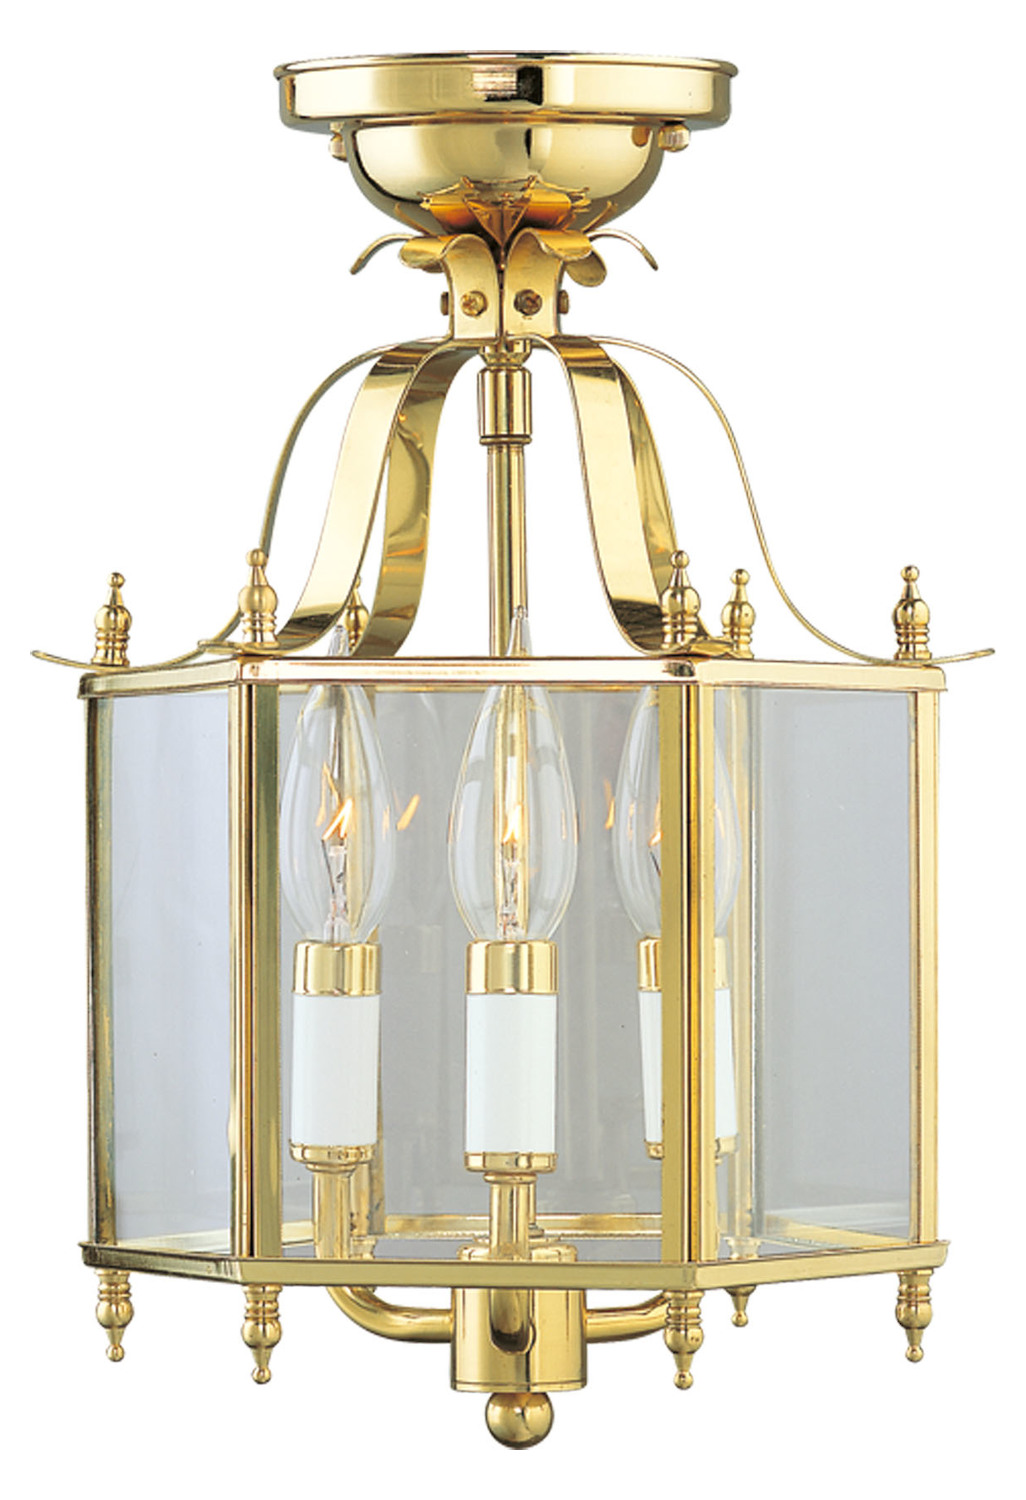 Foyer Lighting Fixtures Flush Mount : Livex lighting polished brass foyer hall semi flush mount